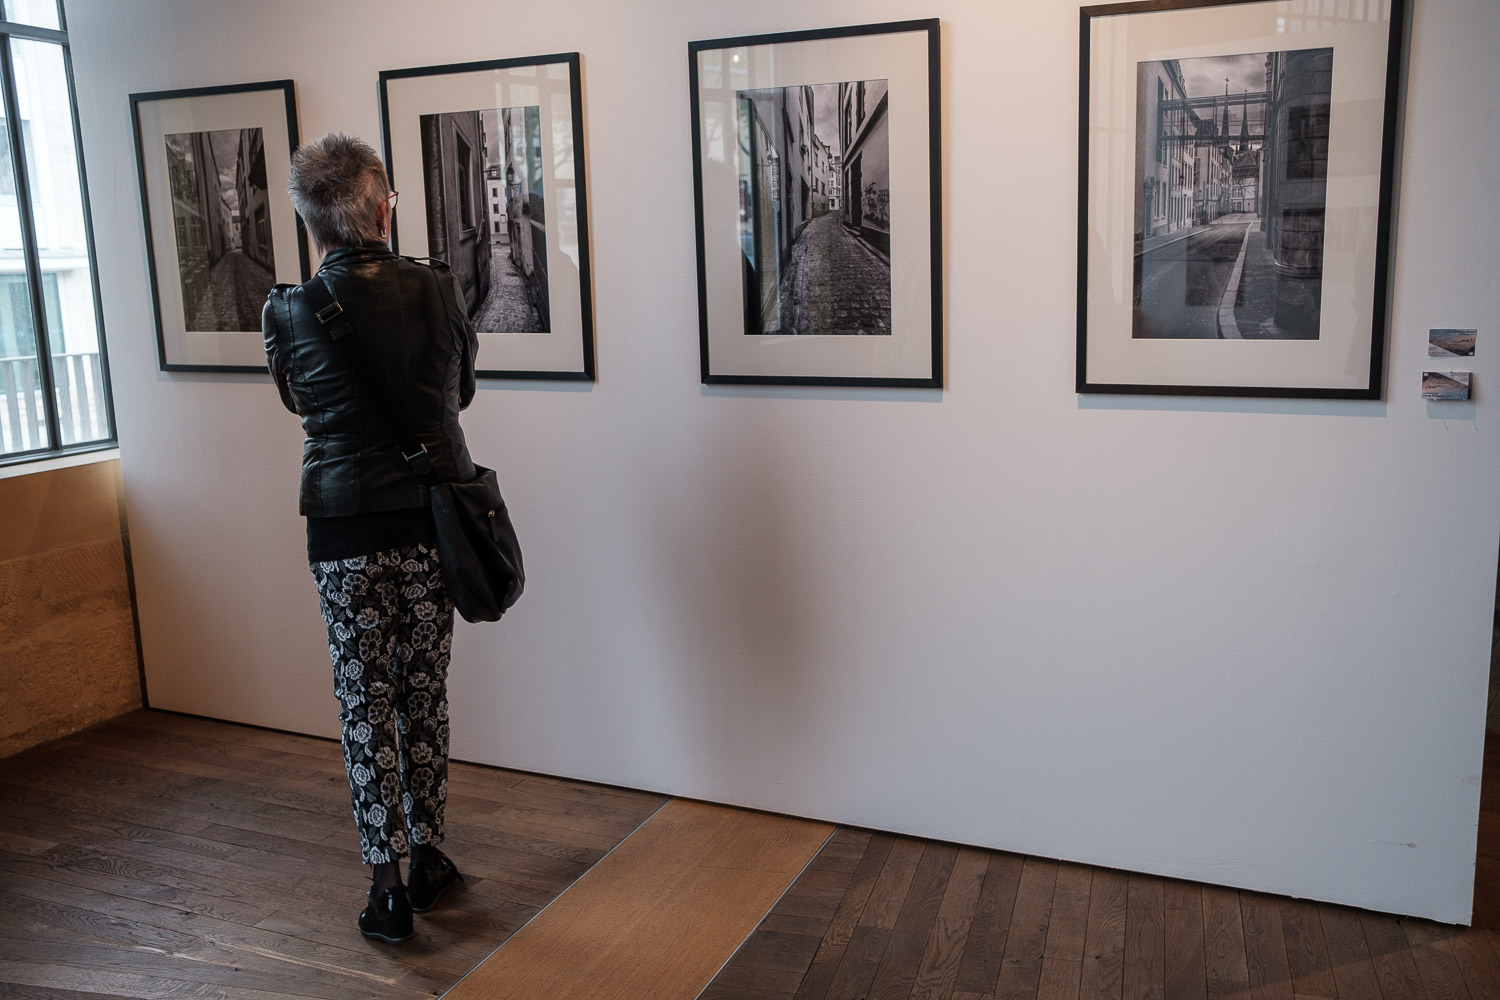 Street Photography Festival 2019 at Rotondes - LSPF 2019 - Exhibition